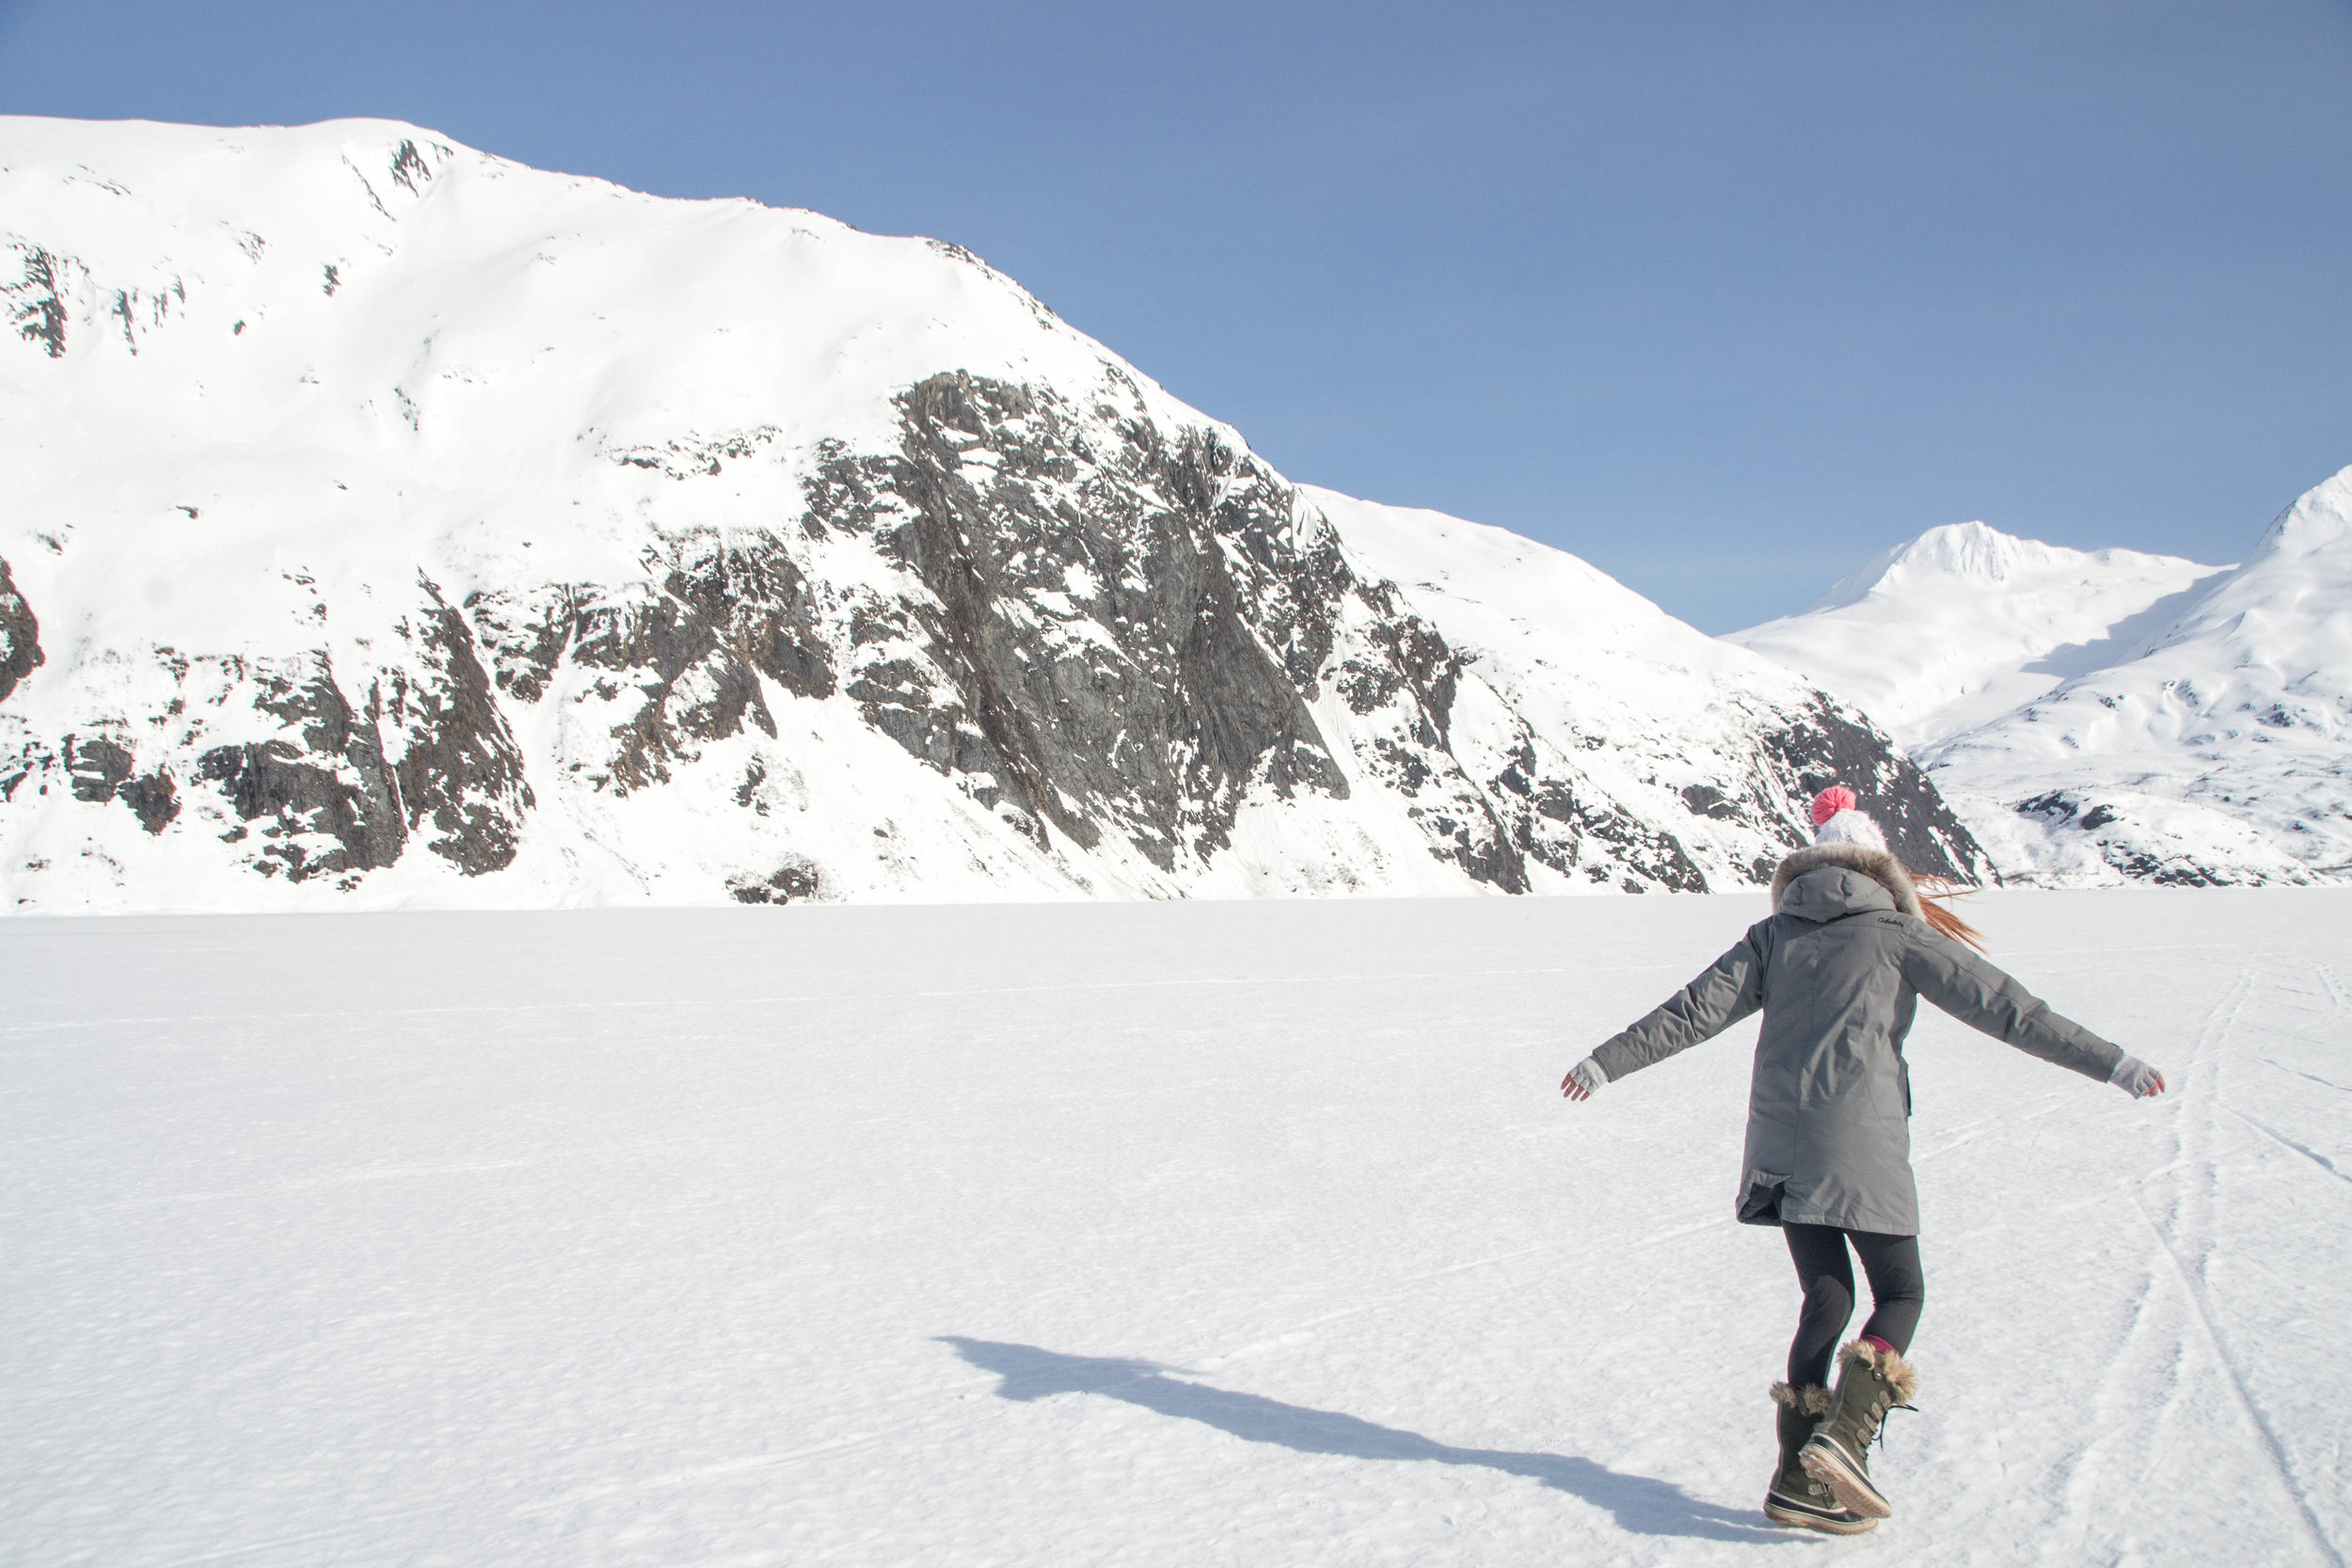 Hiking across a frozen Portage Lake, yep it was cold and windy but believe it or not, there were a lot of people making the hike.